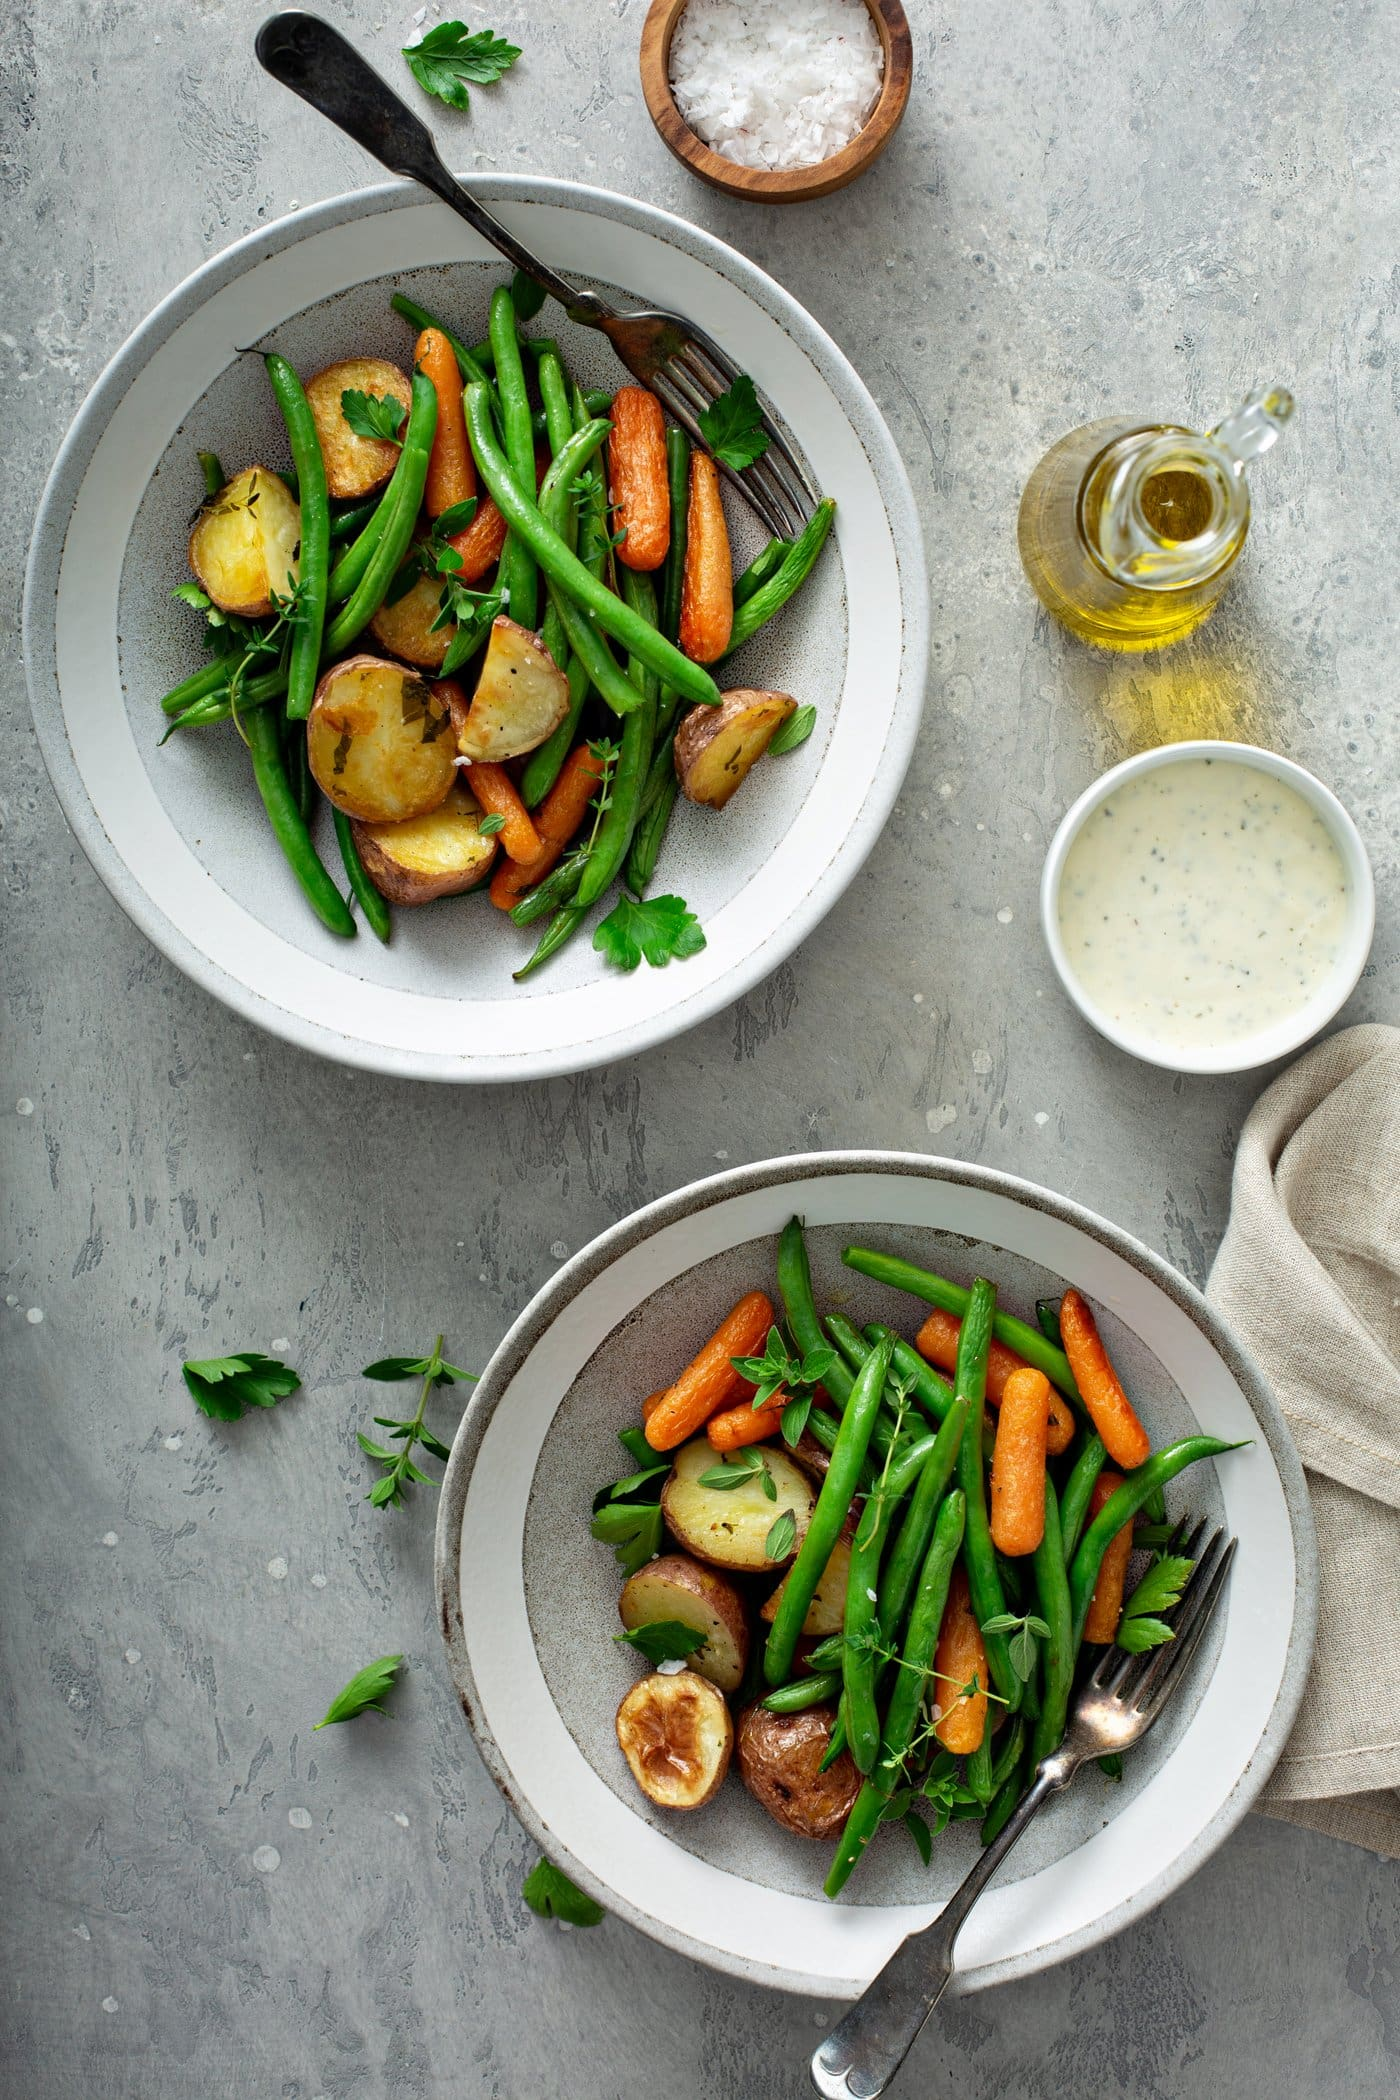 Two dinner plates filled with garlic herb roasted potatoes, carrots and green beans. Fresh thyme and parsley are sprinkled on top. A small container of sauce, a glass container of oil and a napkin are on the table next to the vegetables.